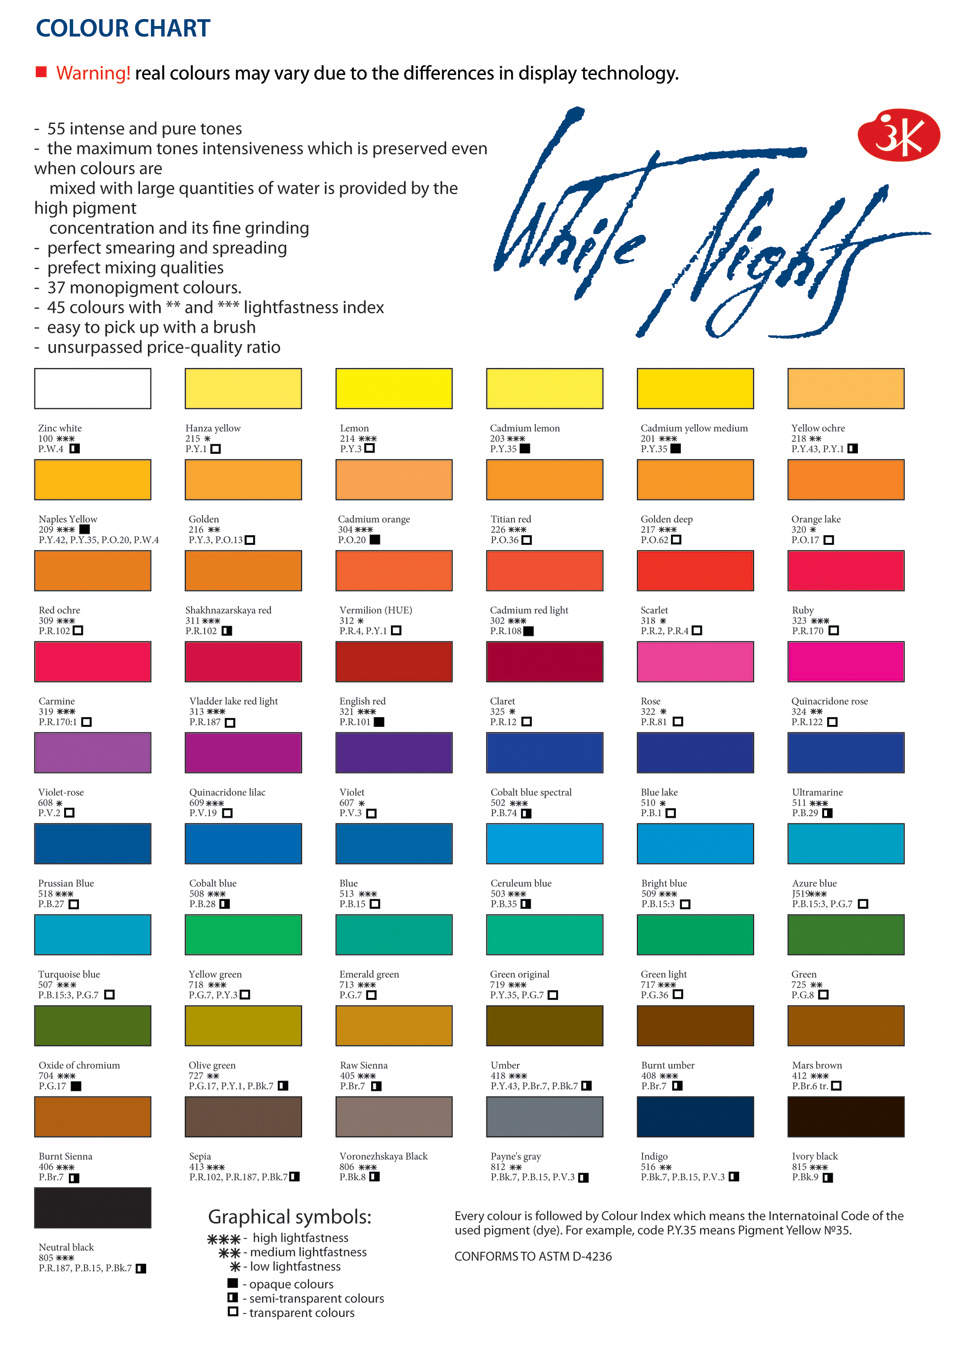 Doodlewash doodlewash review white nights watercolours white nights watercolour chart geenschuldenfo Image collections